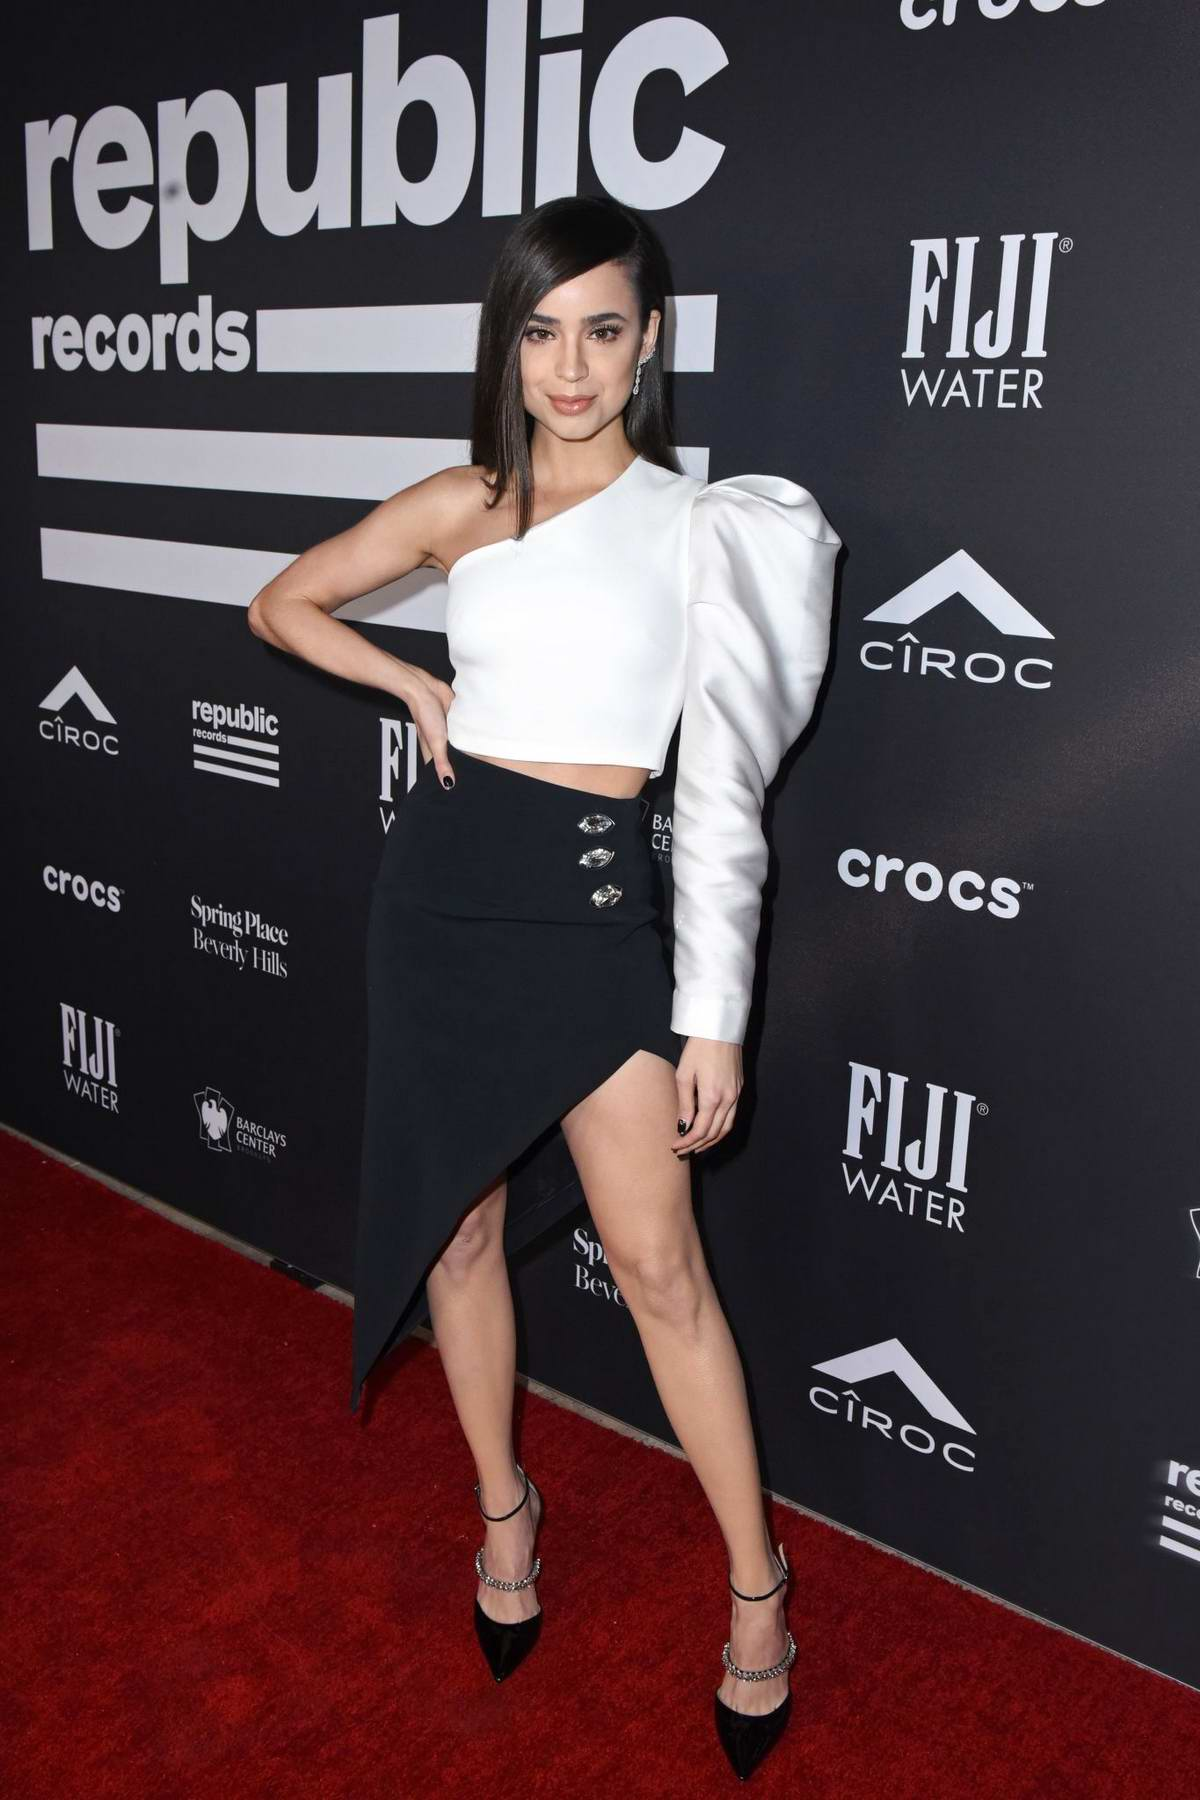 Sofia Carson attends Republic Records' Grammys 2019 After Party in Los Angeles